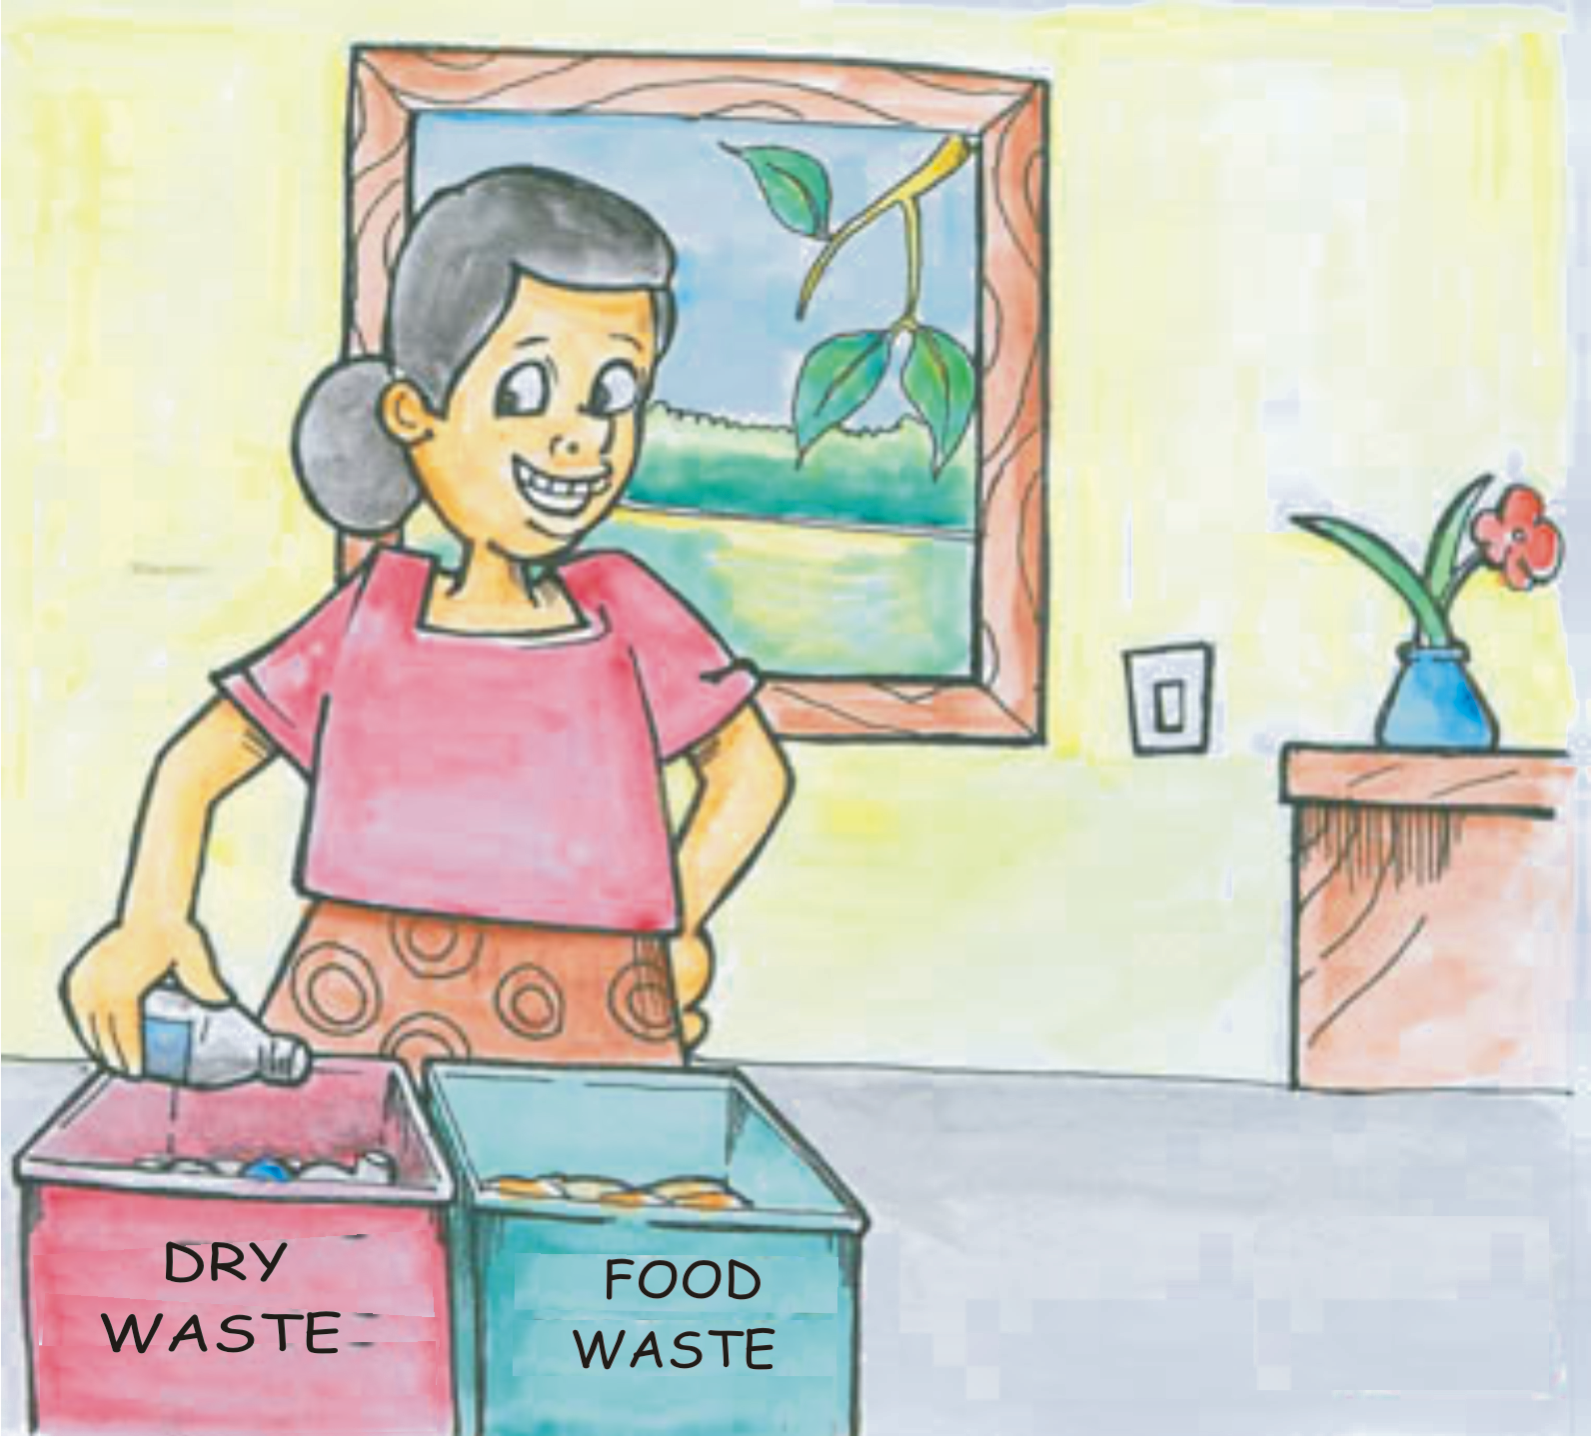 essay on segregation of waste at home Segregation essay segregation essay the namely storage of waste/segregation of waste at source is essential some even likened their treatment at home to the.